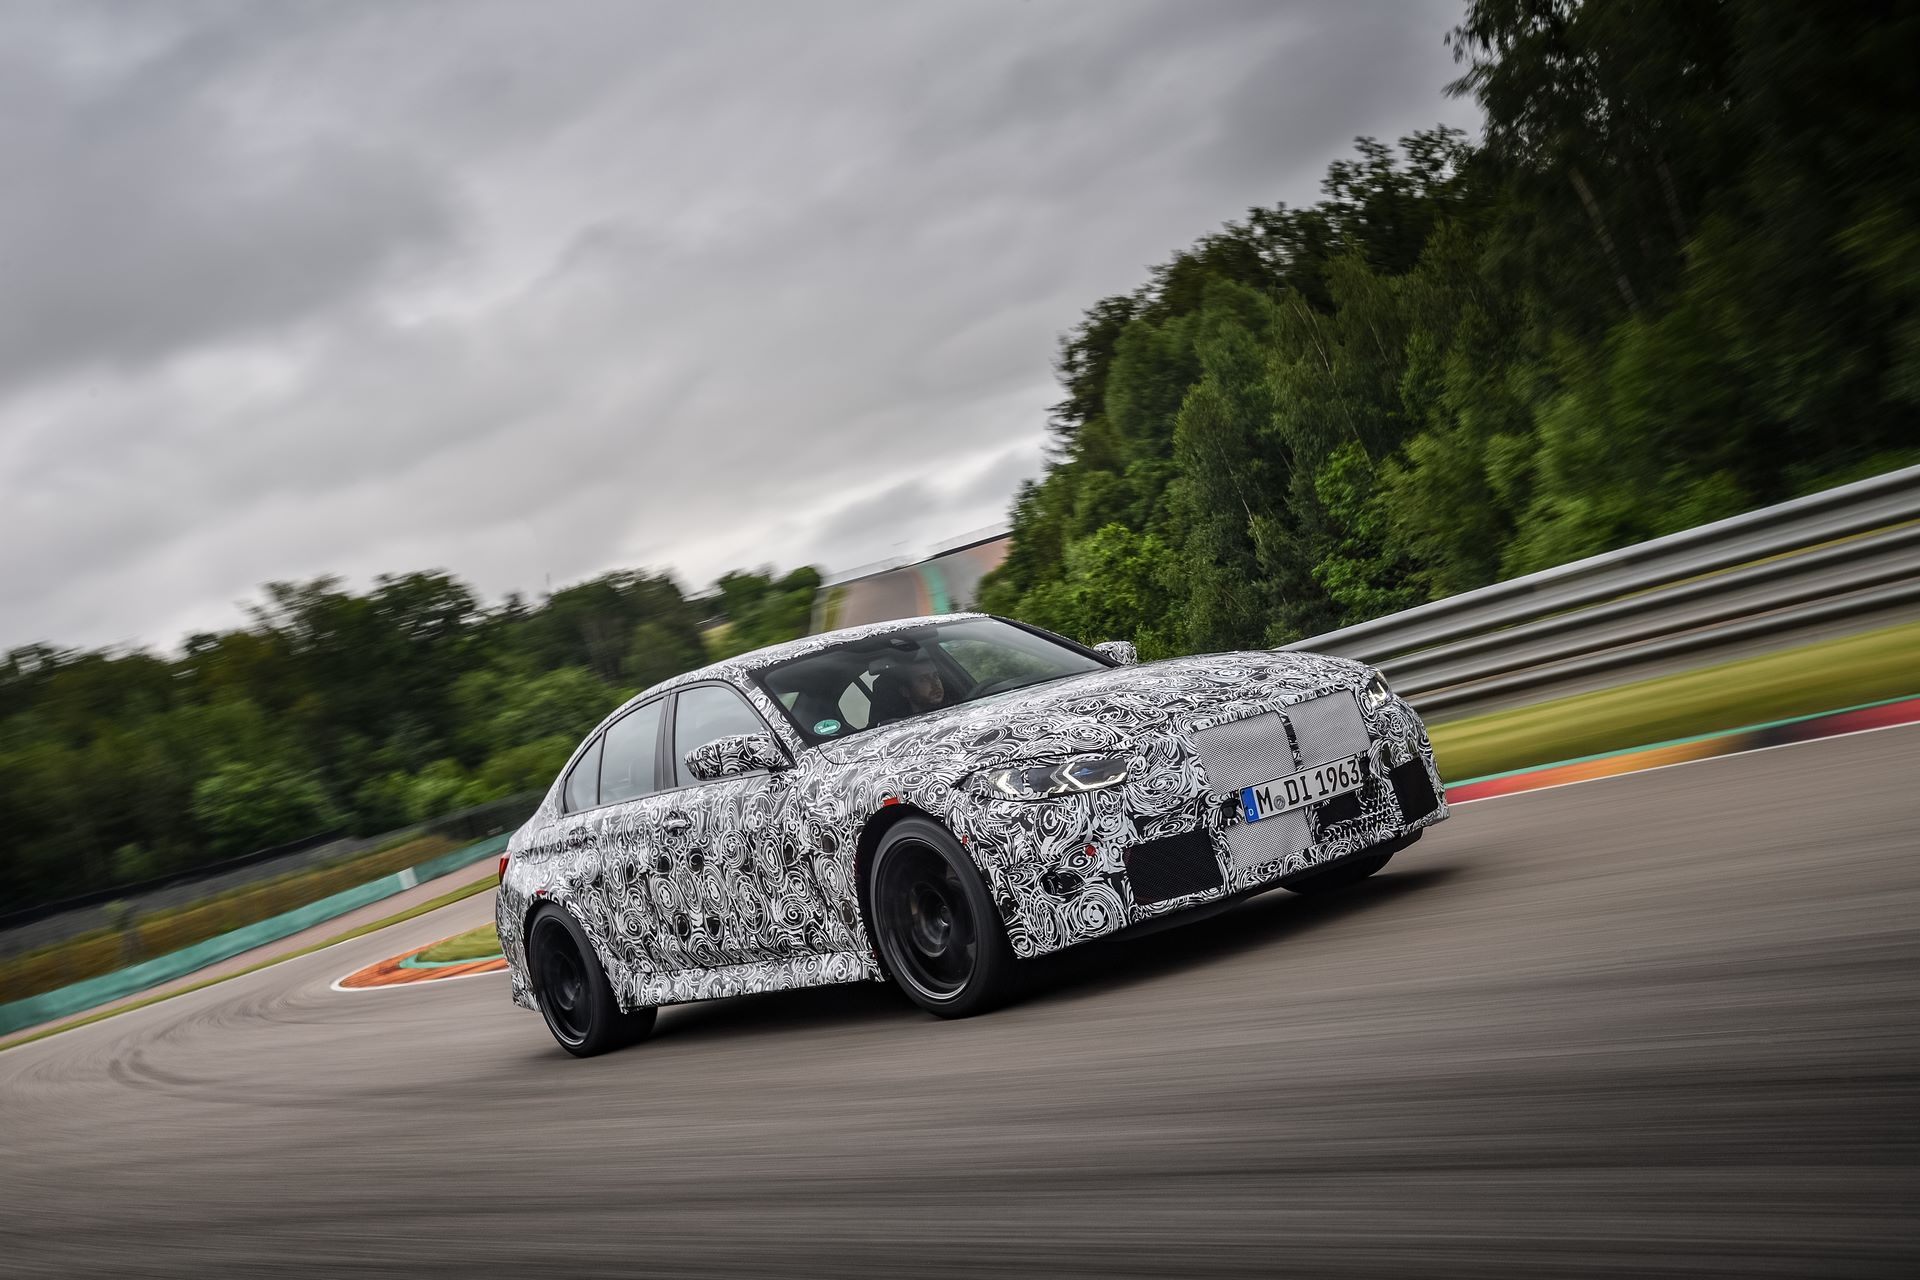 BMW-M3-and-M4-2020-tests-7